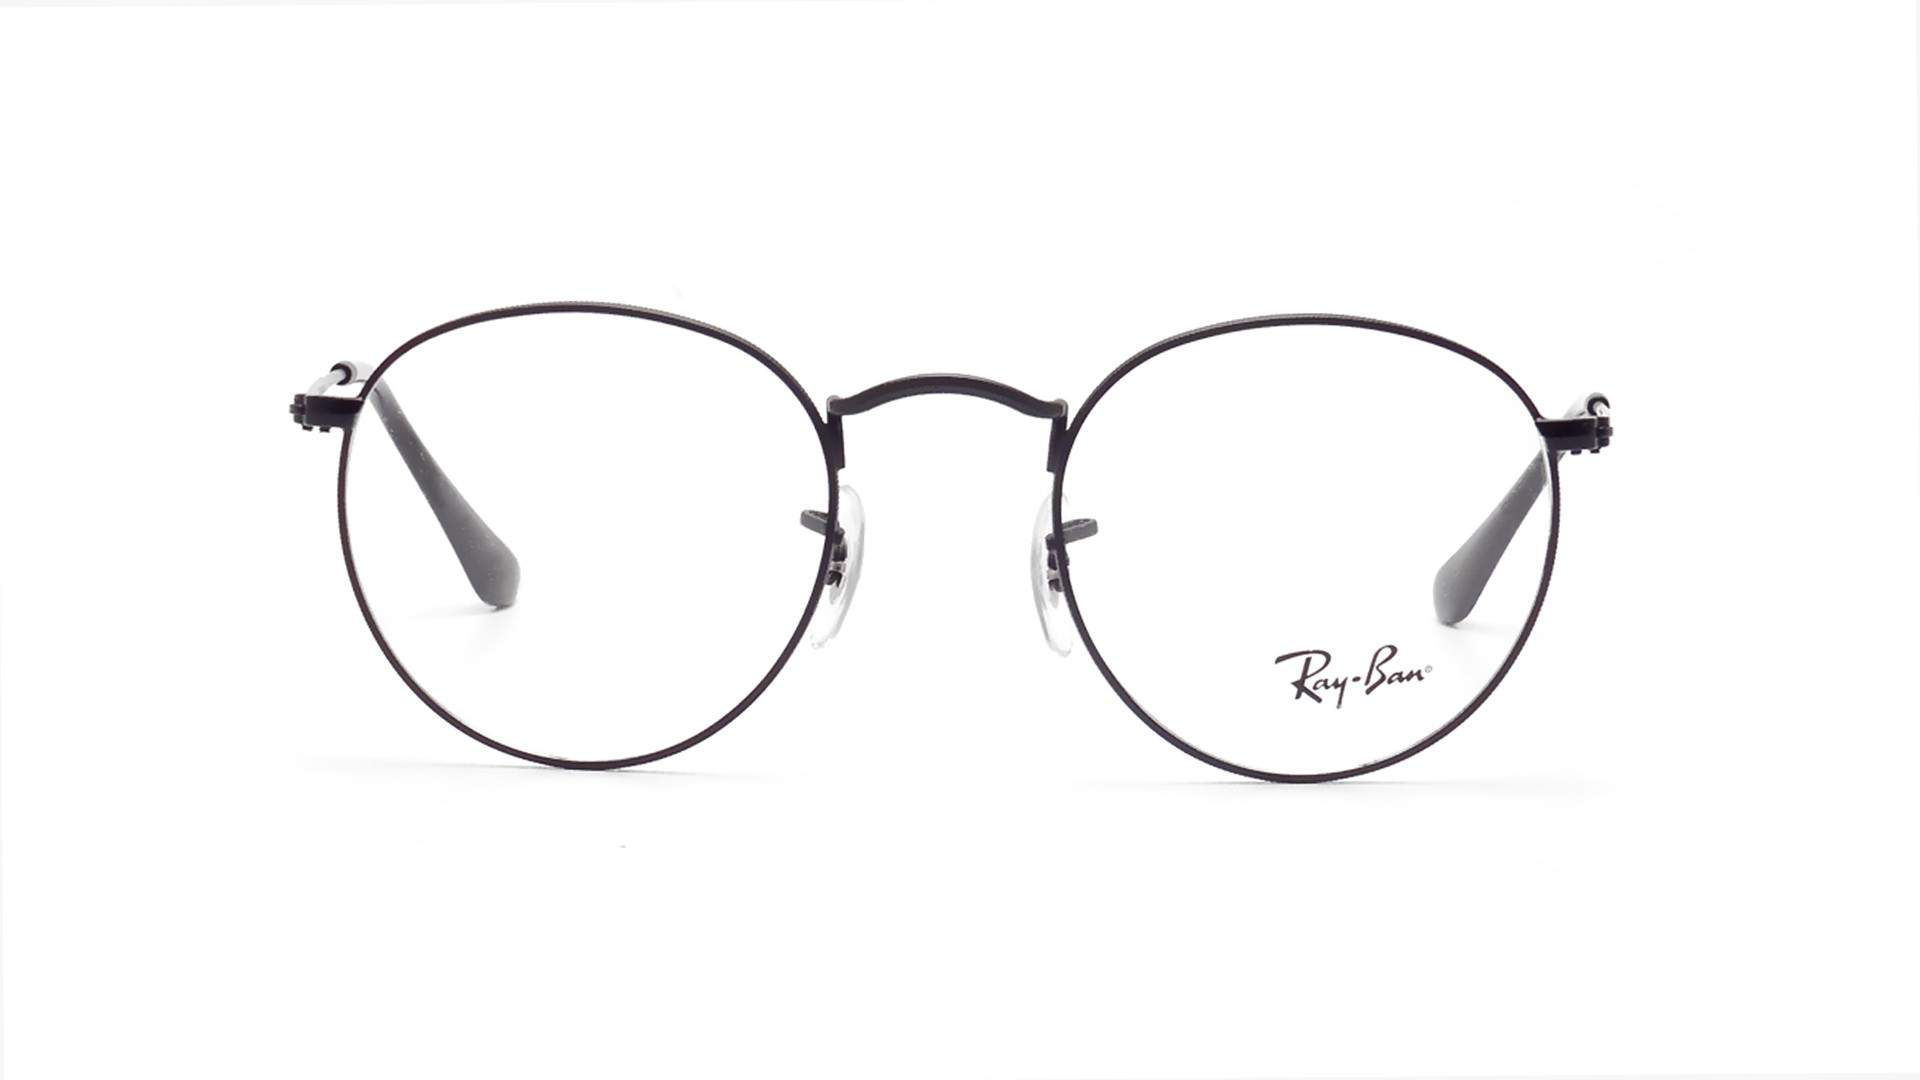 53eea3df0c3 Eyeglasses Ray-Ban Round Metal Black Matte RX3447 RB3447V 2503 50-21 Medium